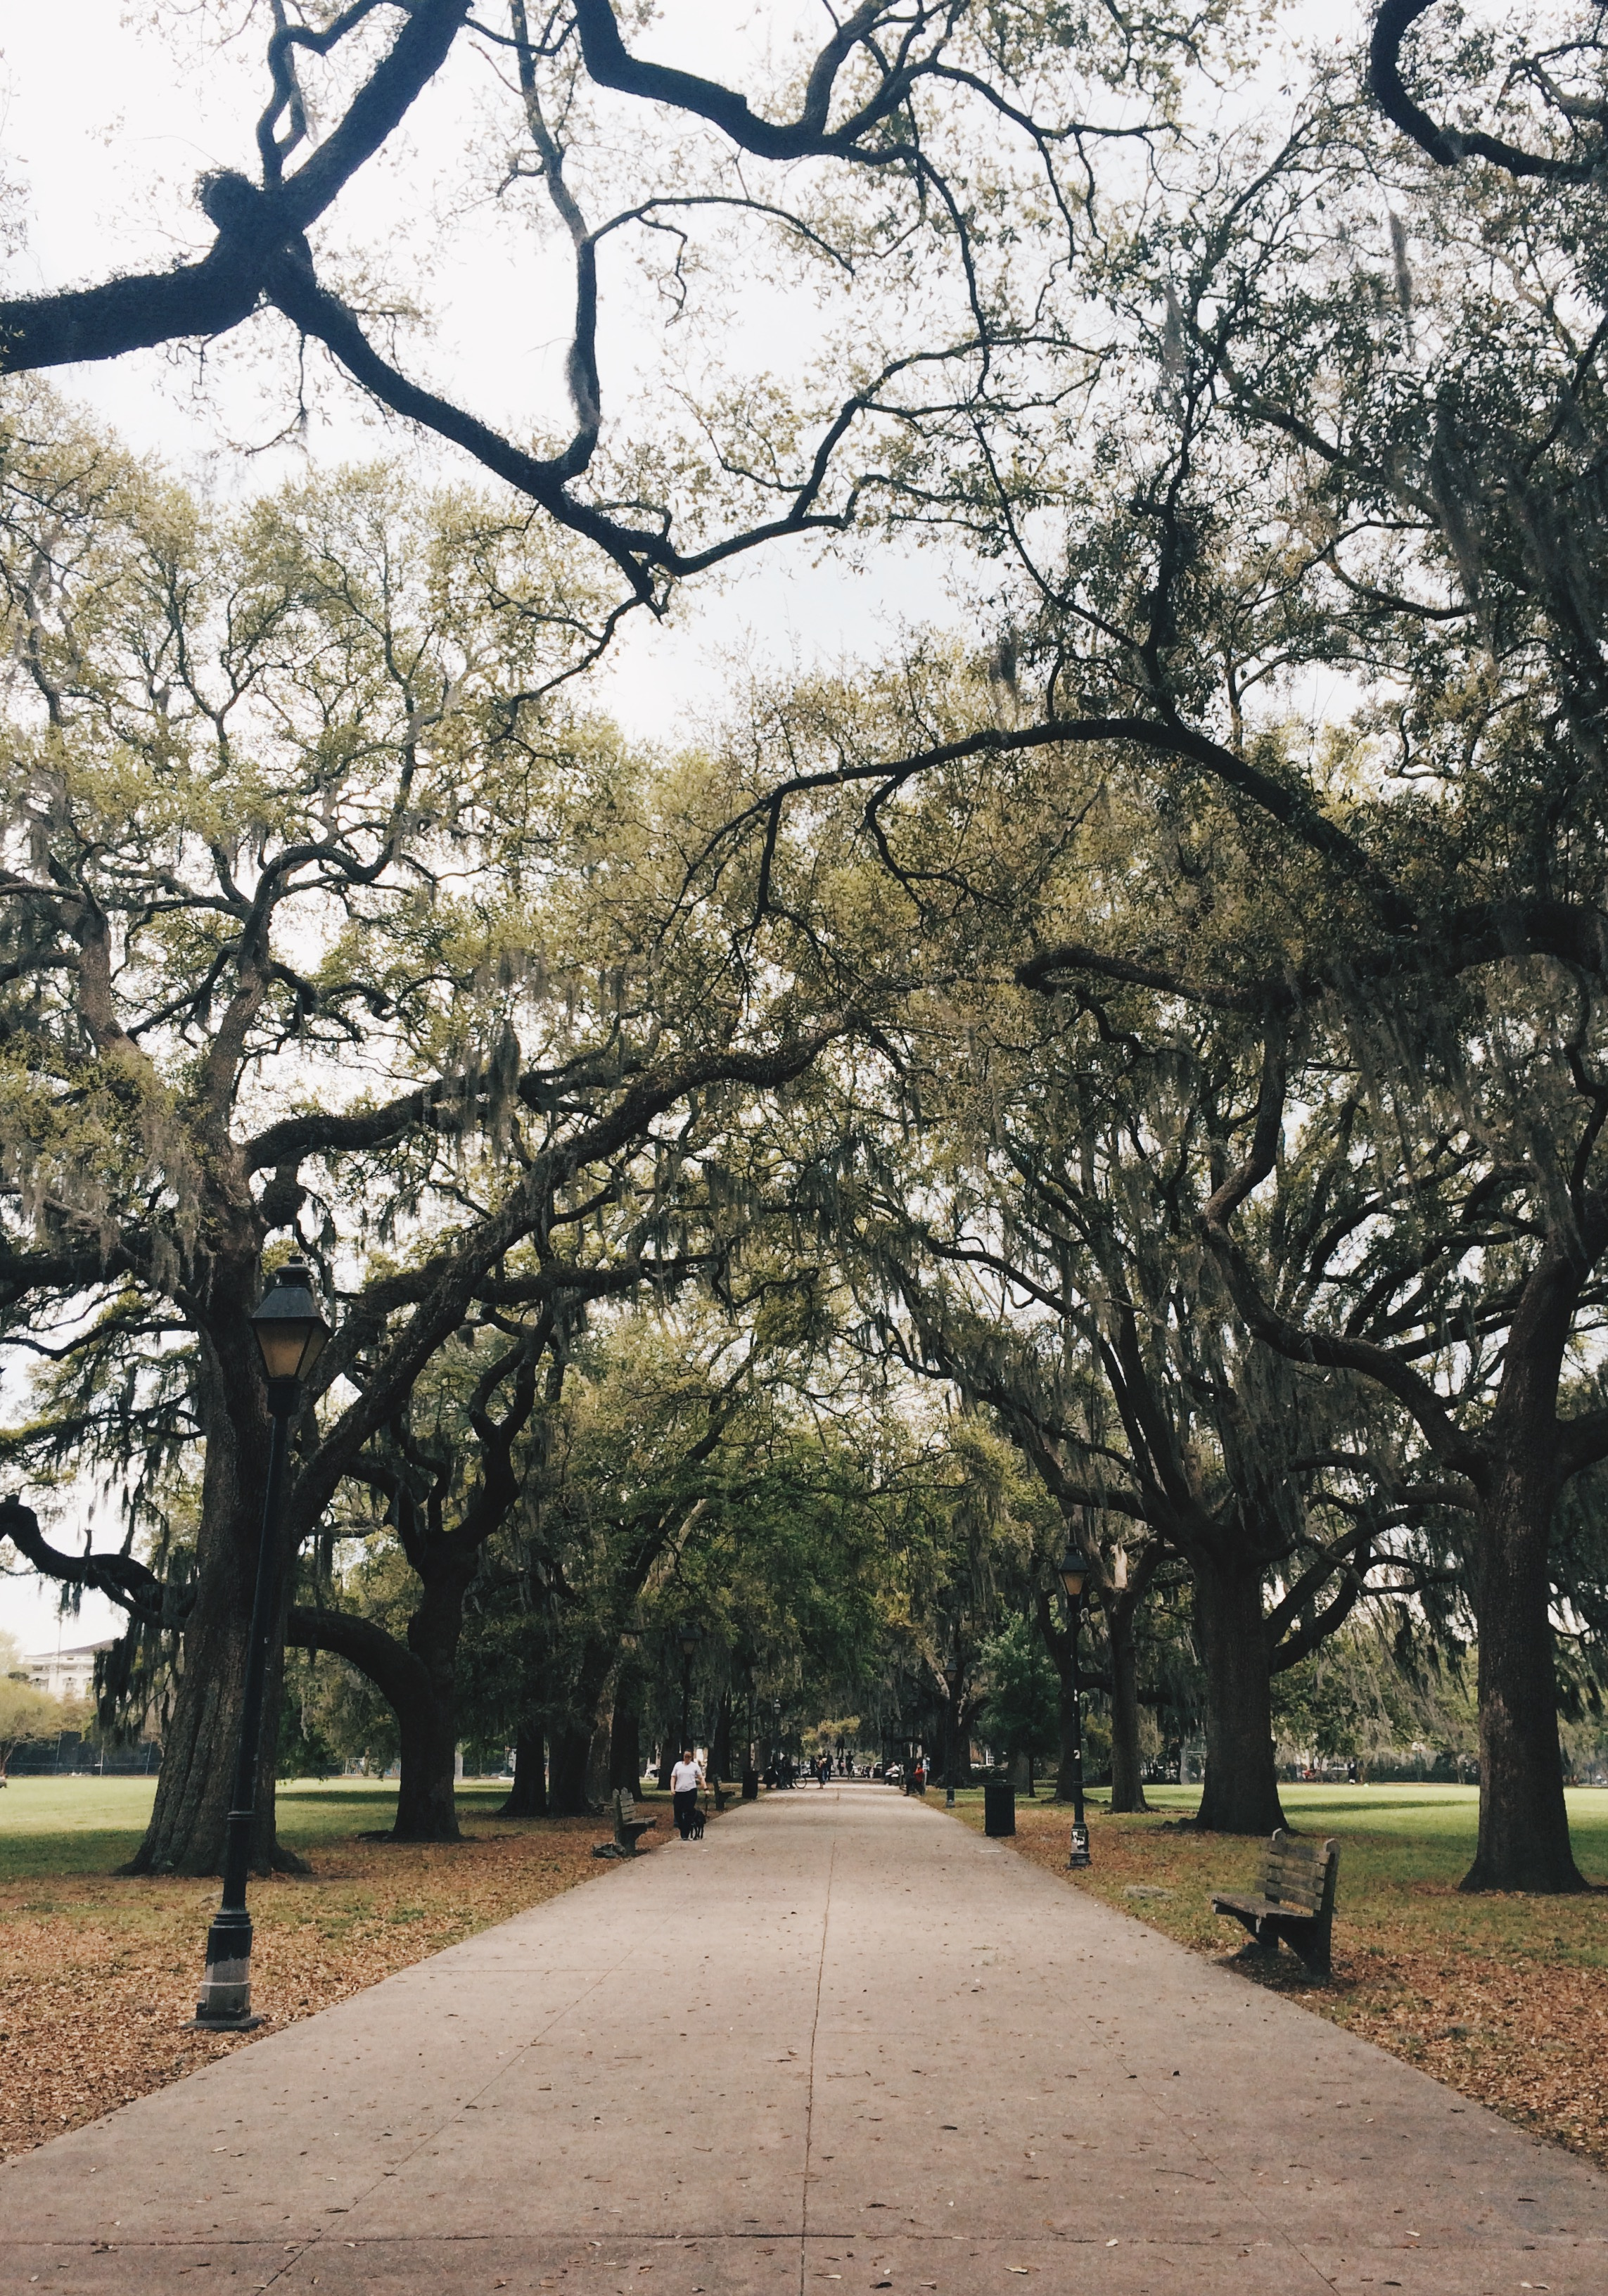 Forsyth Park, Savannah, where many characters interact. Photo by Raquel Reyes.